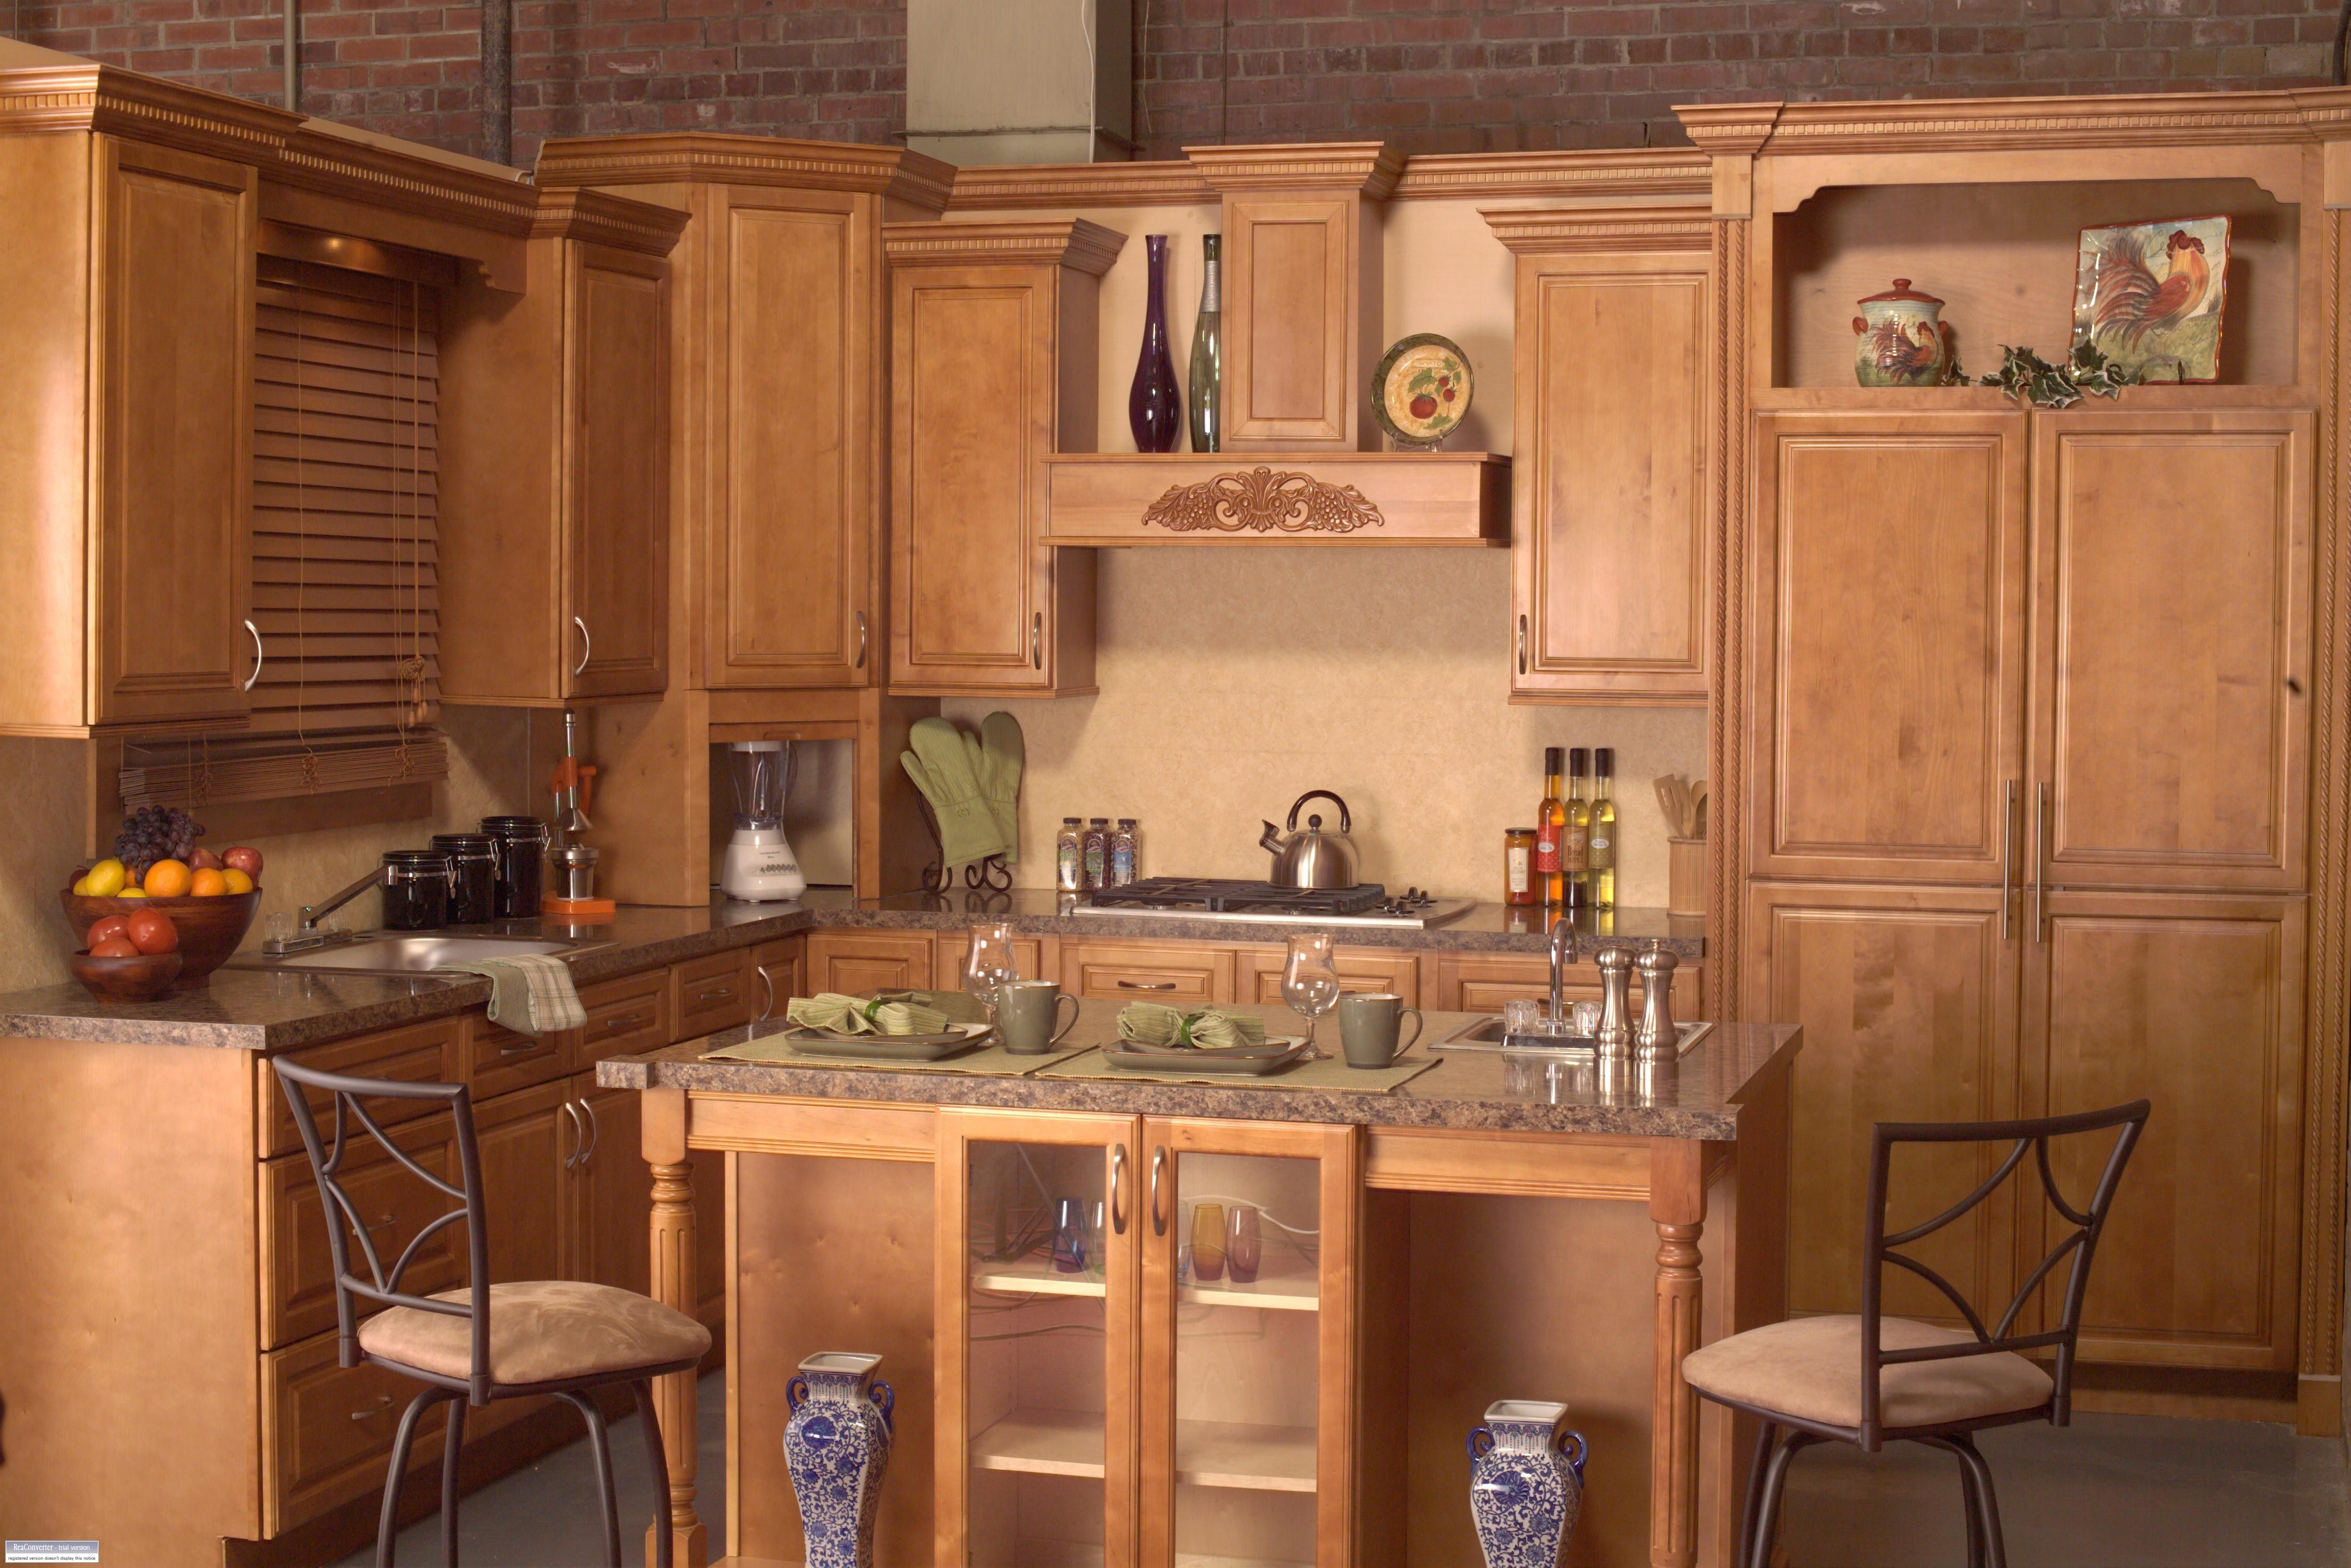 Spice Kitchen Spice Maple Kitchen Cabinets Premium Cabinets Maple Kitchen Cabinets Kitchen Remodel Images Of Kitchen Cabinets